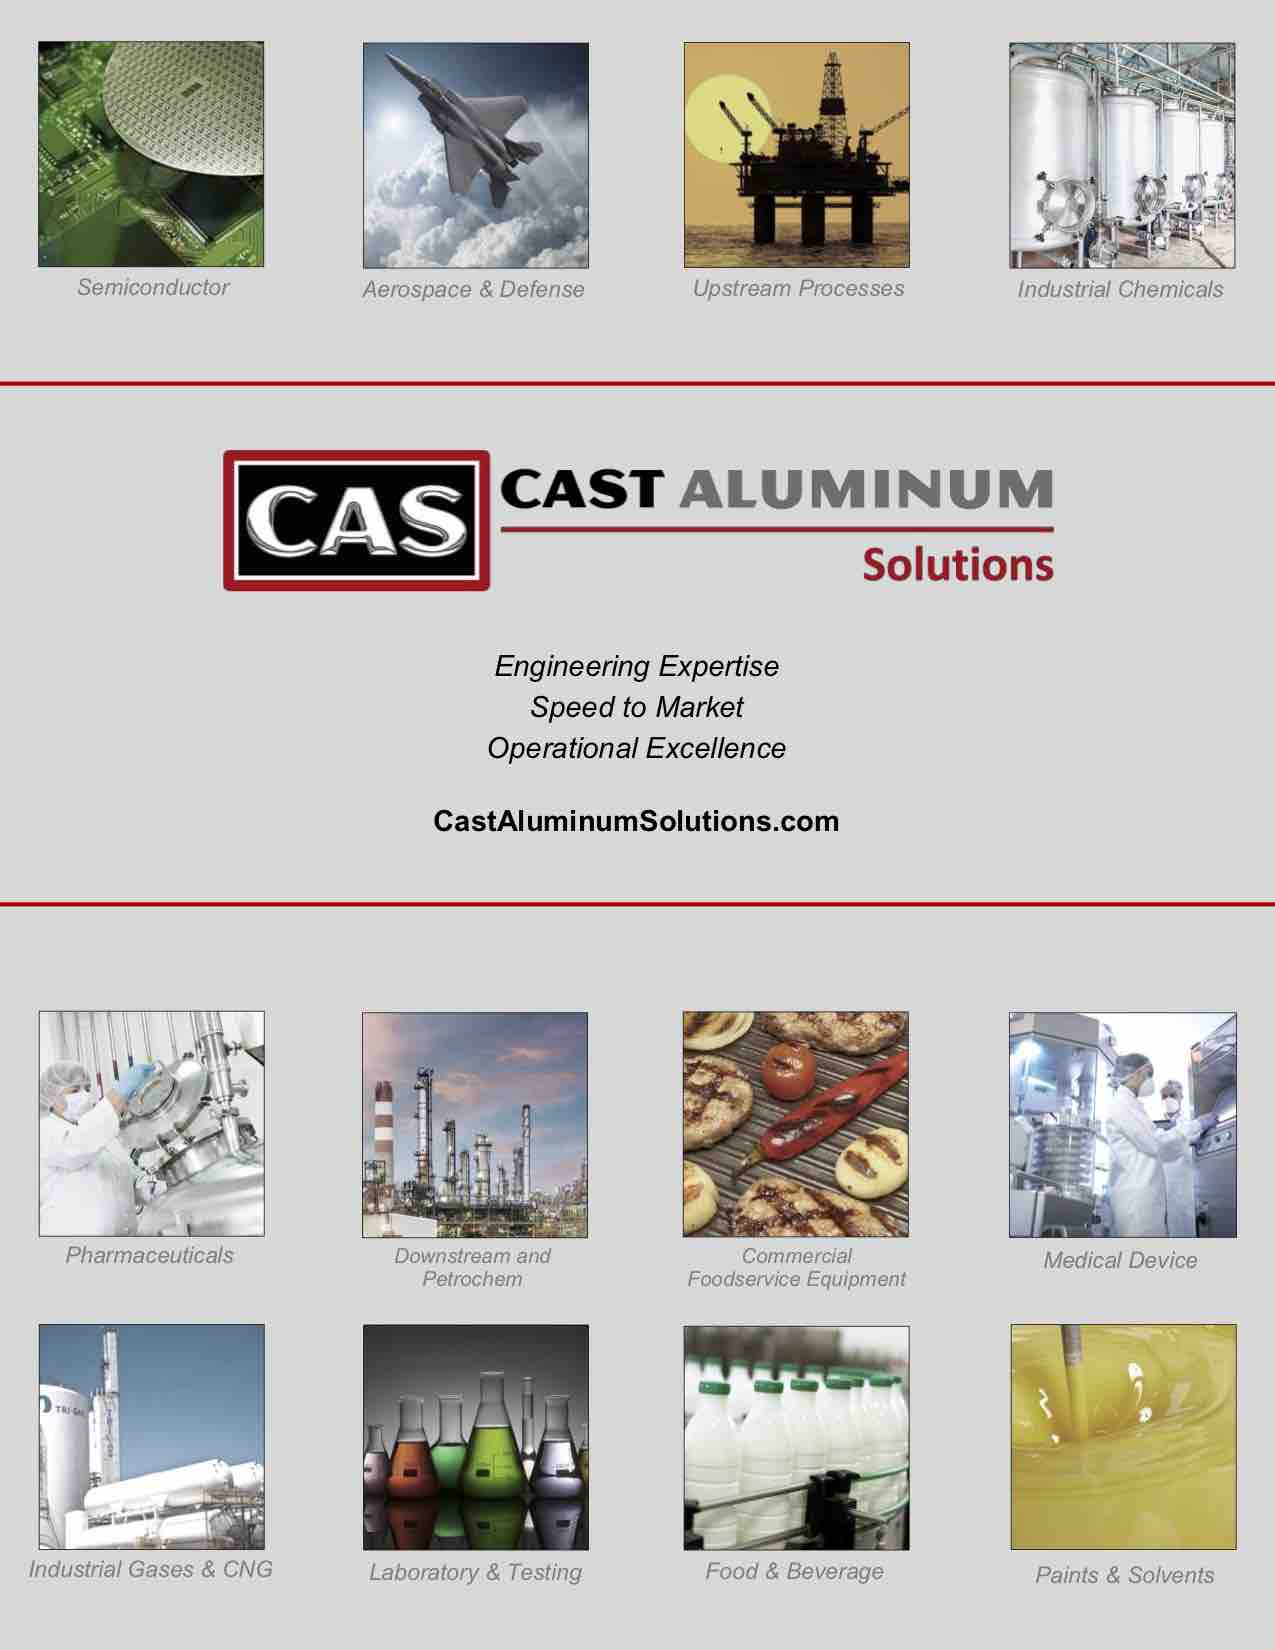 Cast Aluminum Solutions General Overview Brochure (dragged)